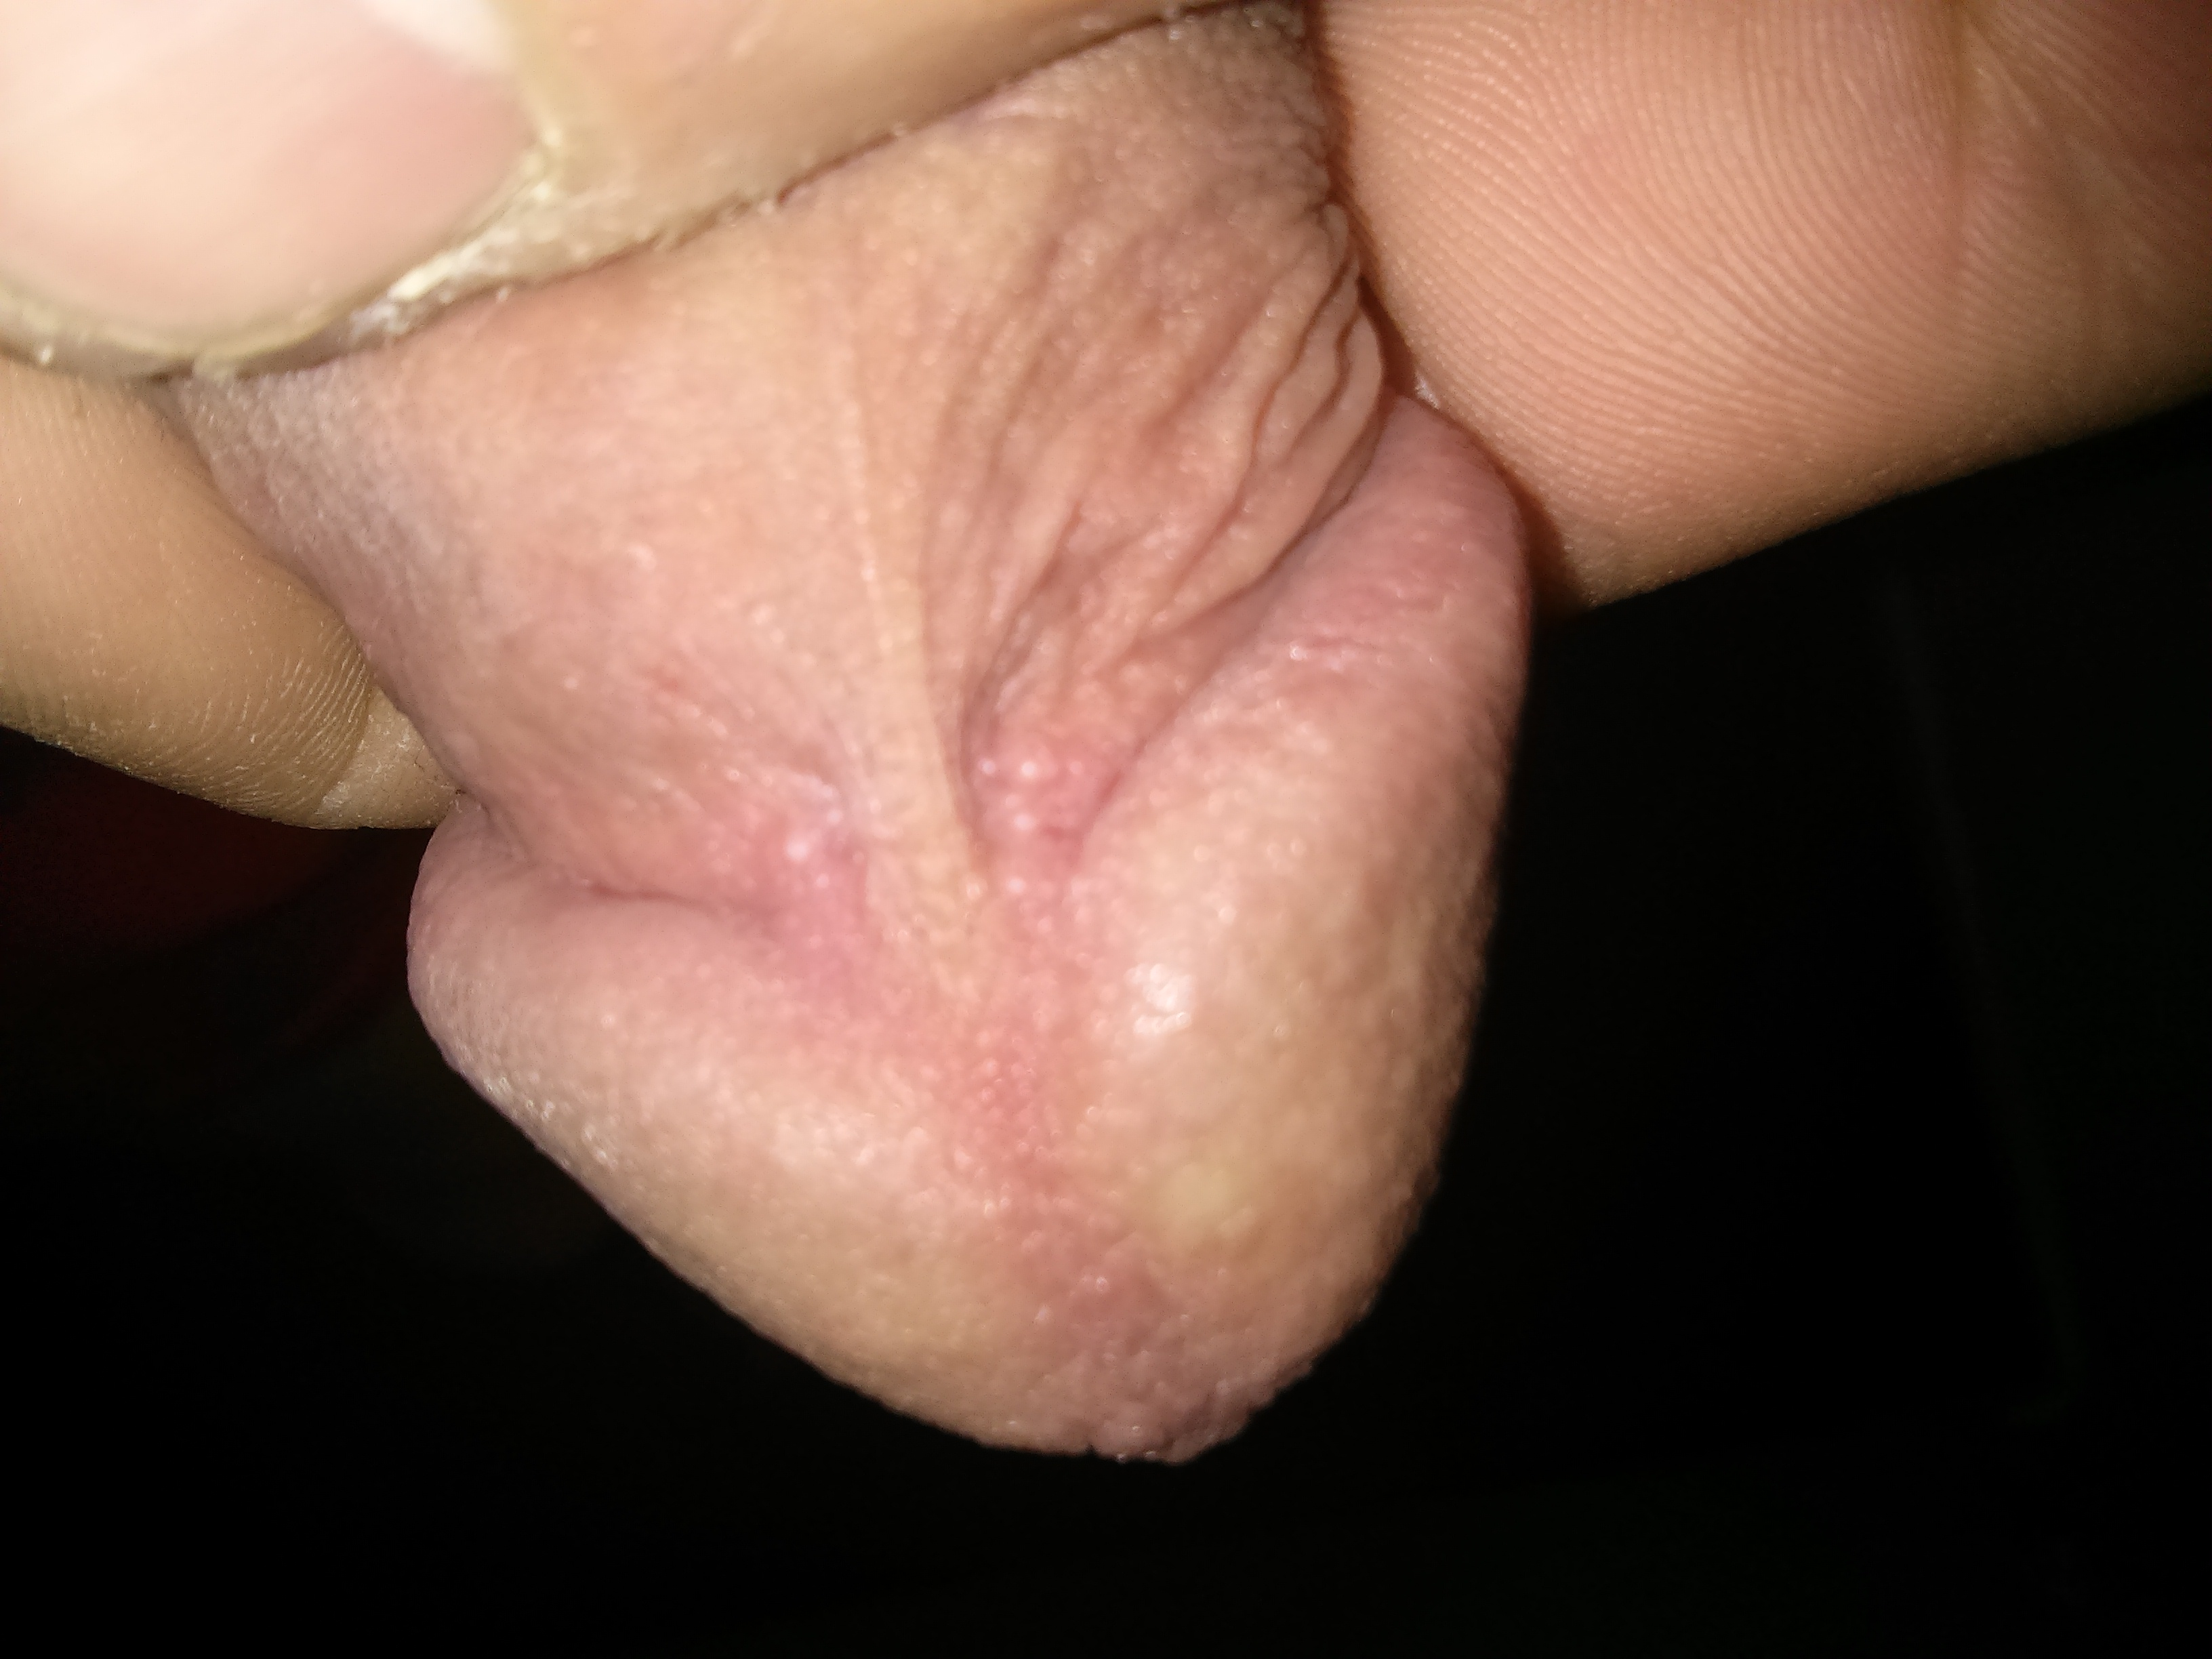 White mass on the head of the penis